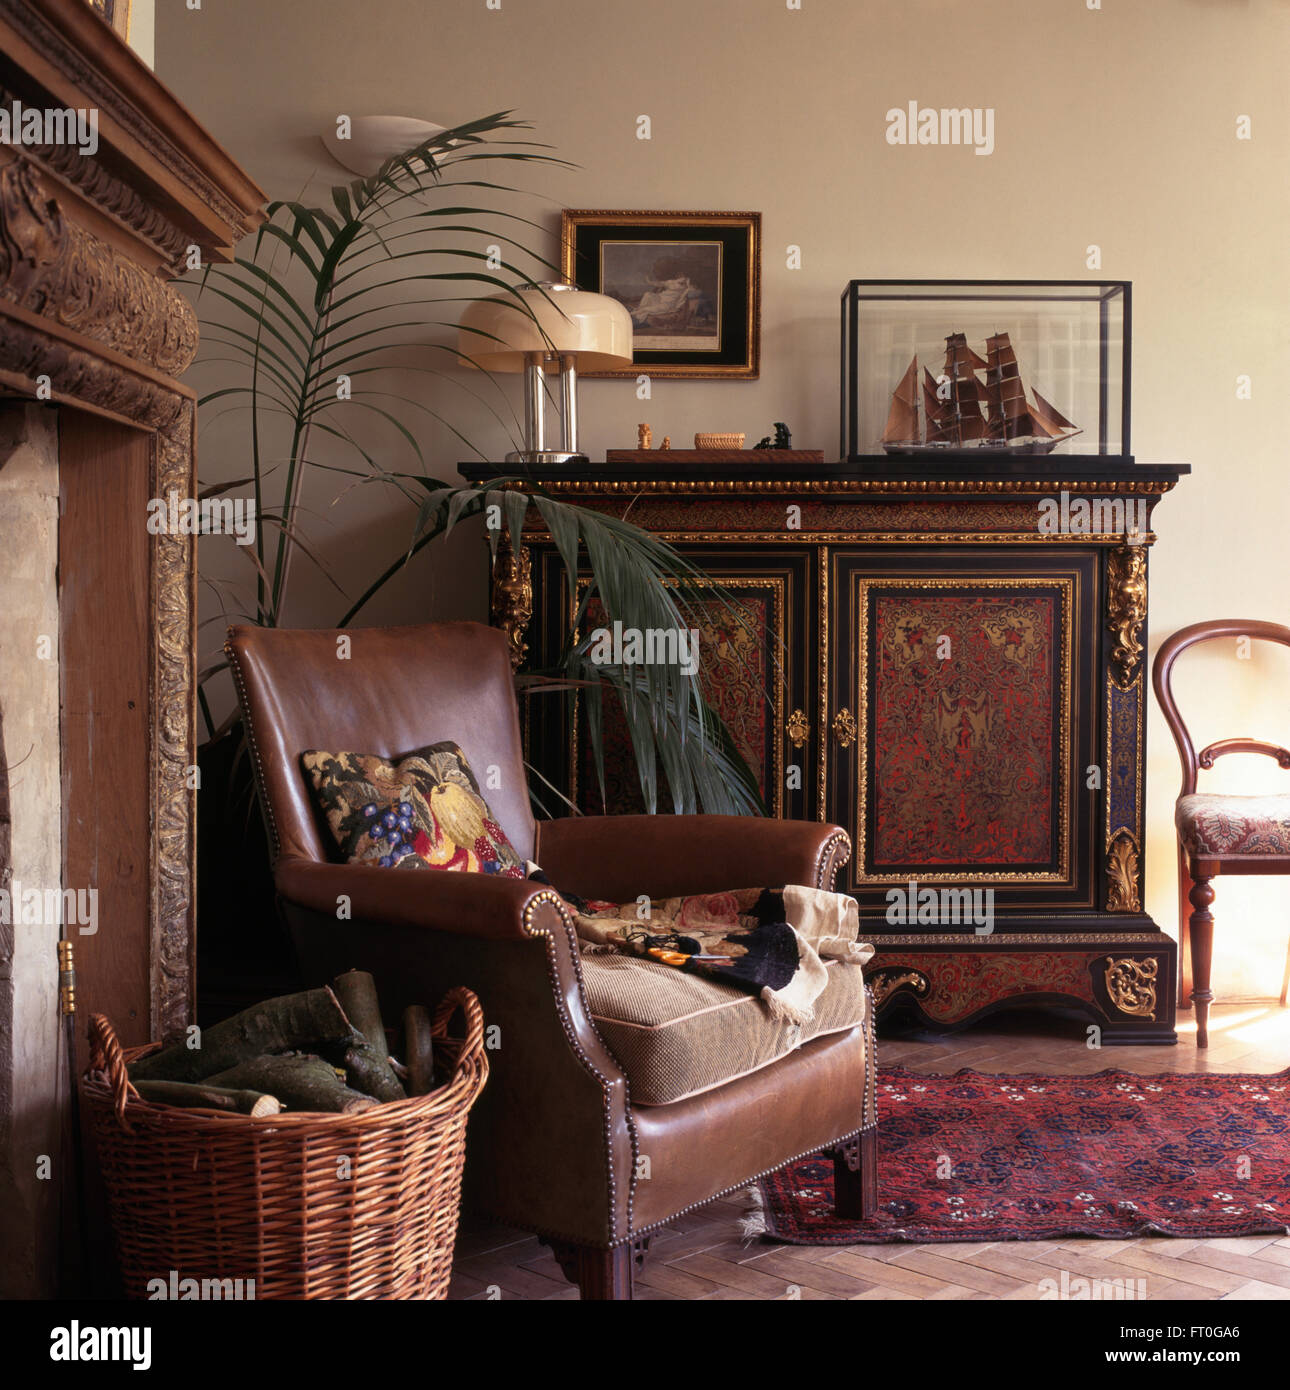 Brown leather chair and ornate antique cupboard in old fashioned ...